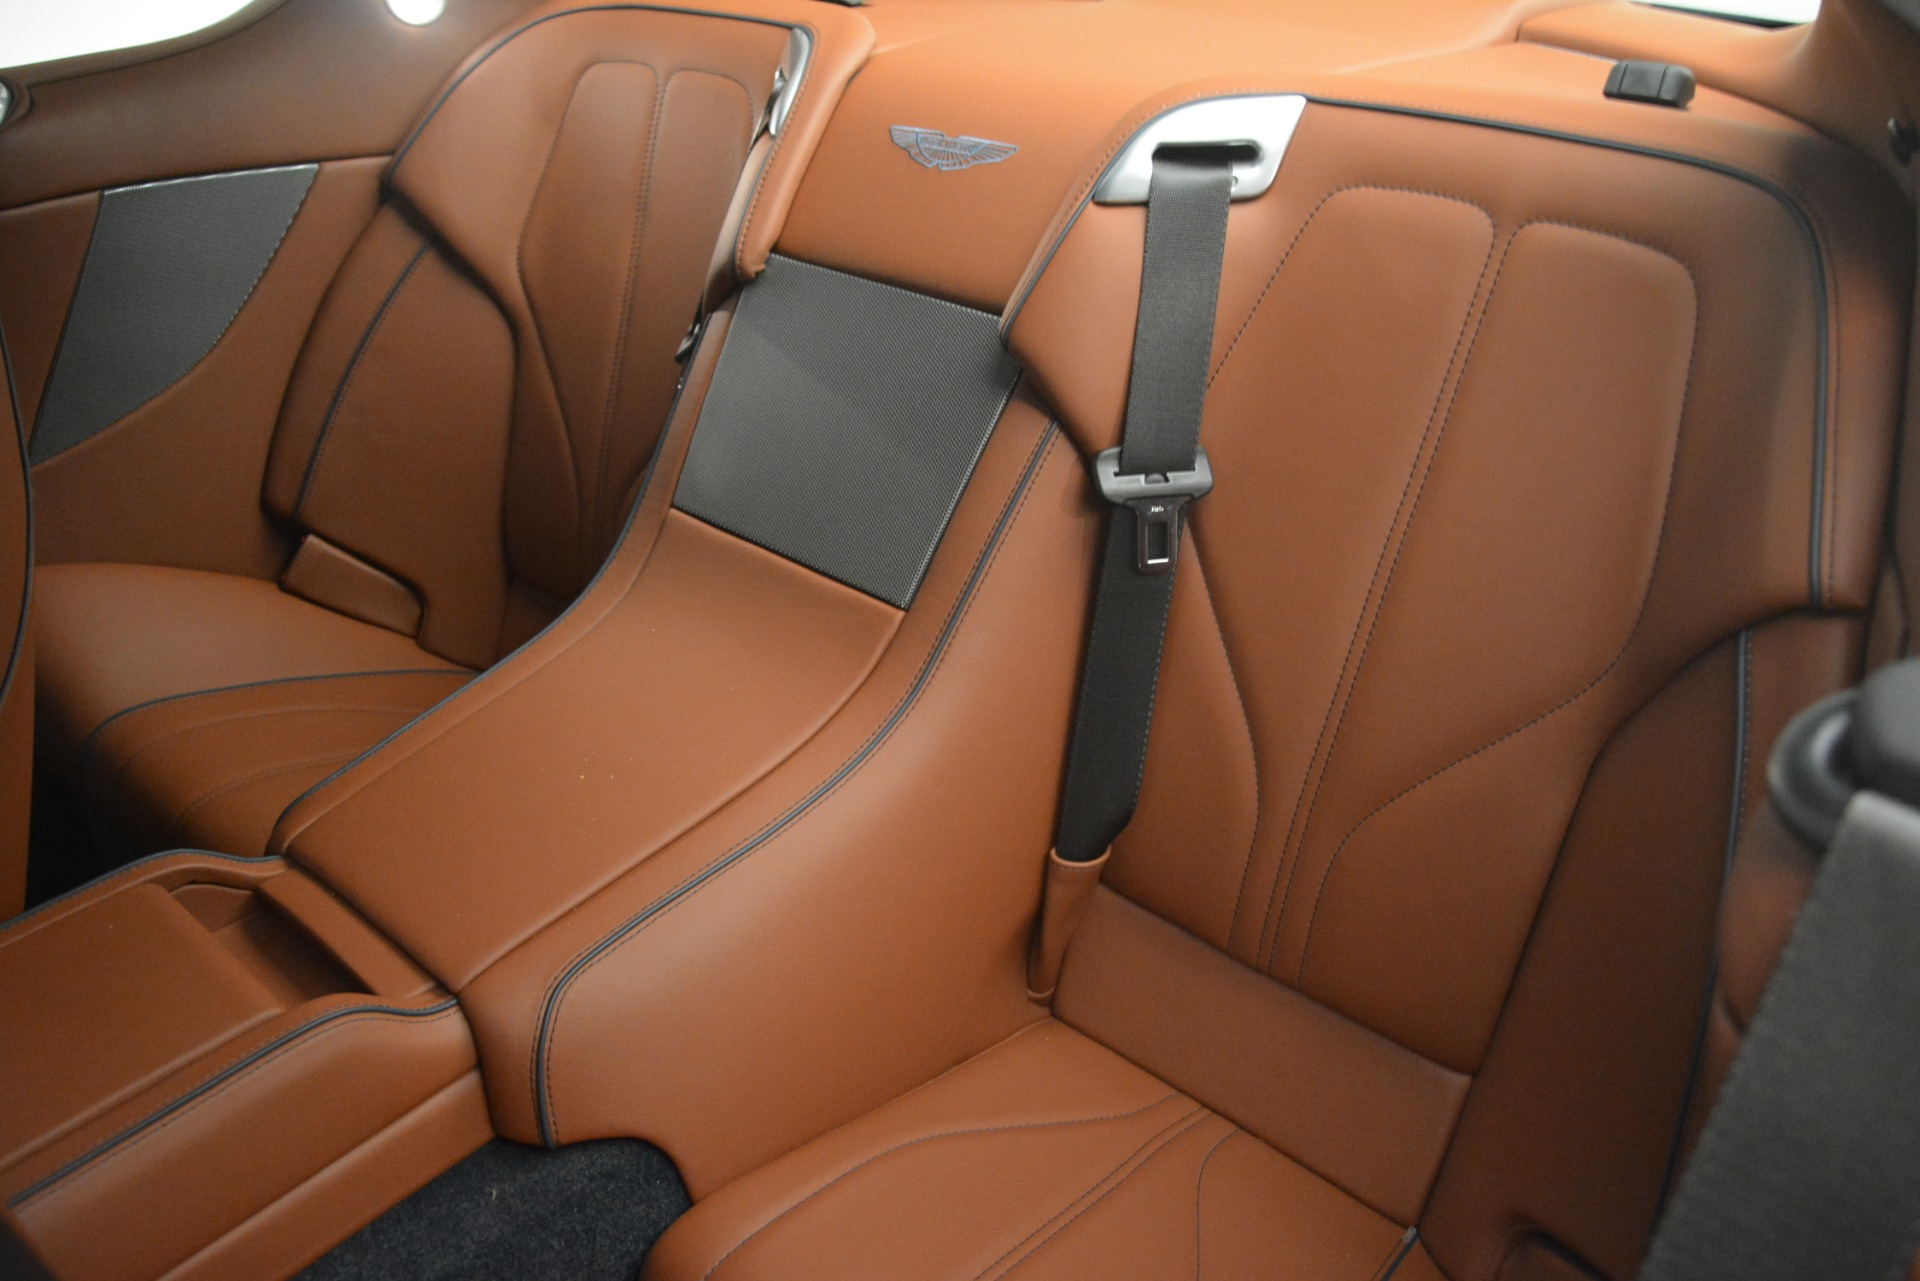 Used 2014 Aston Martin DB9 Coupe For Sale In Westport, CT 3010_p17